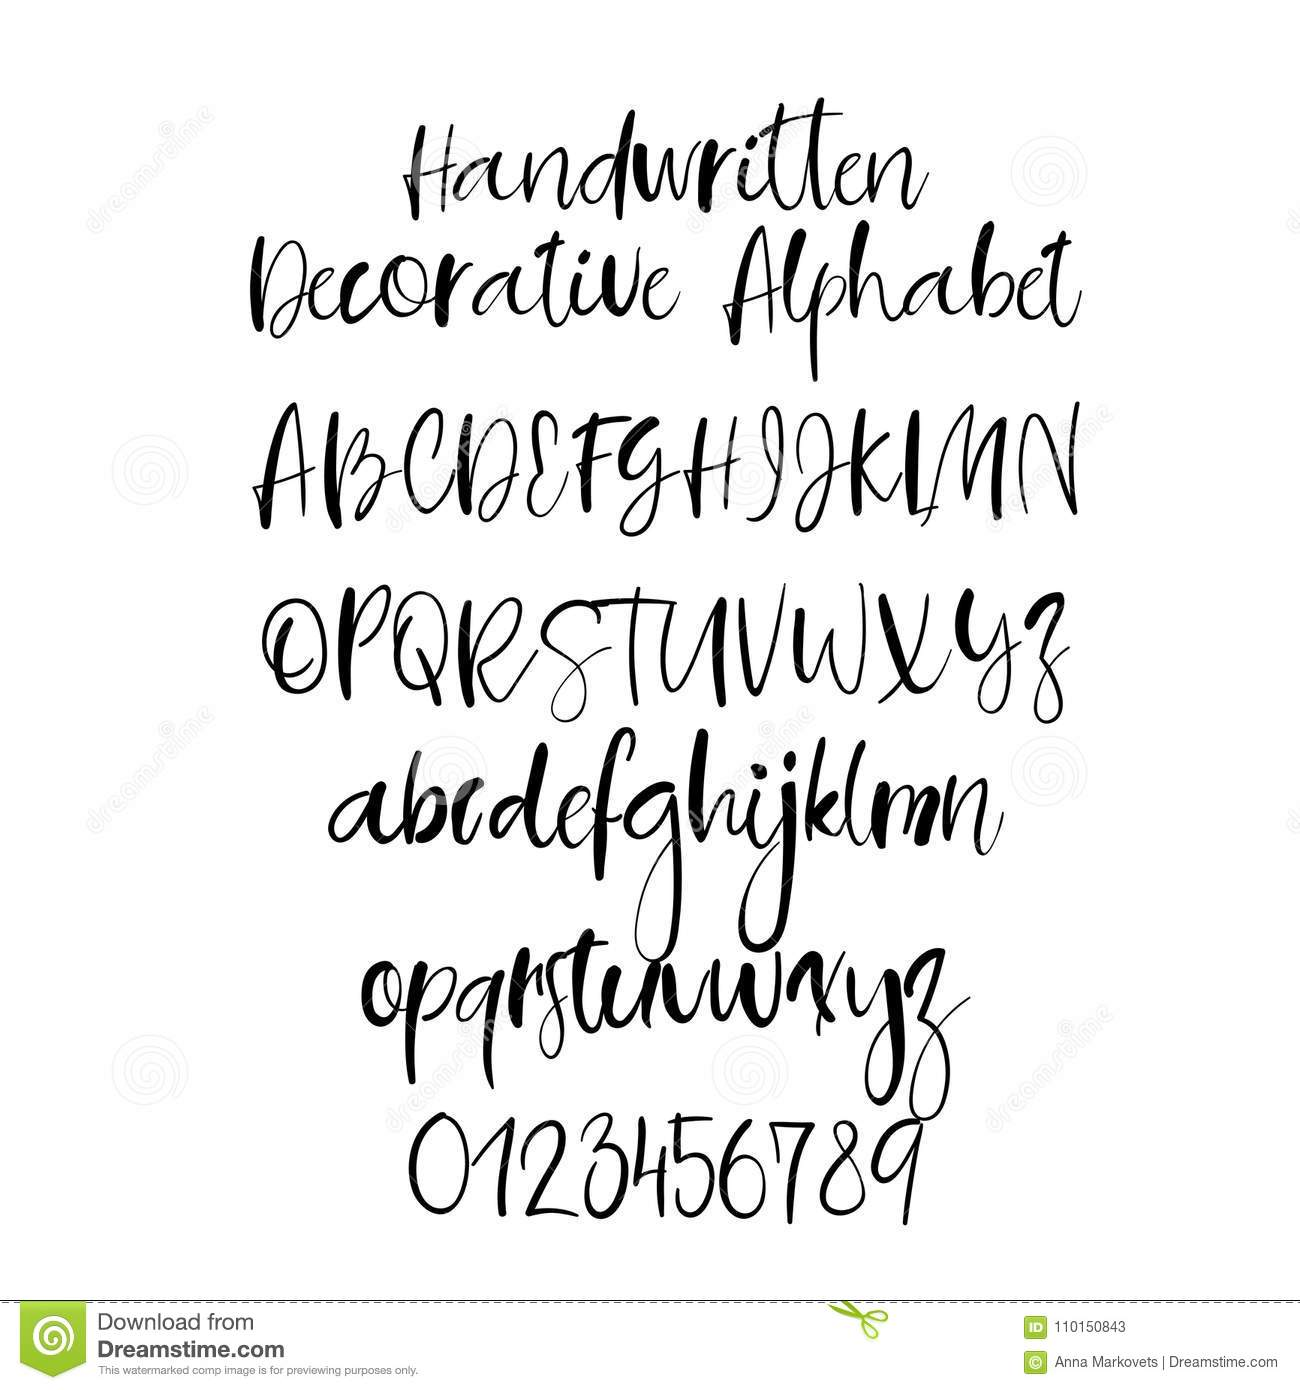 Decorative Hand Drawn Alphabet Handwritten Brush Font